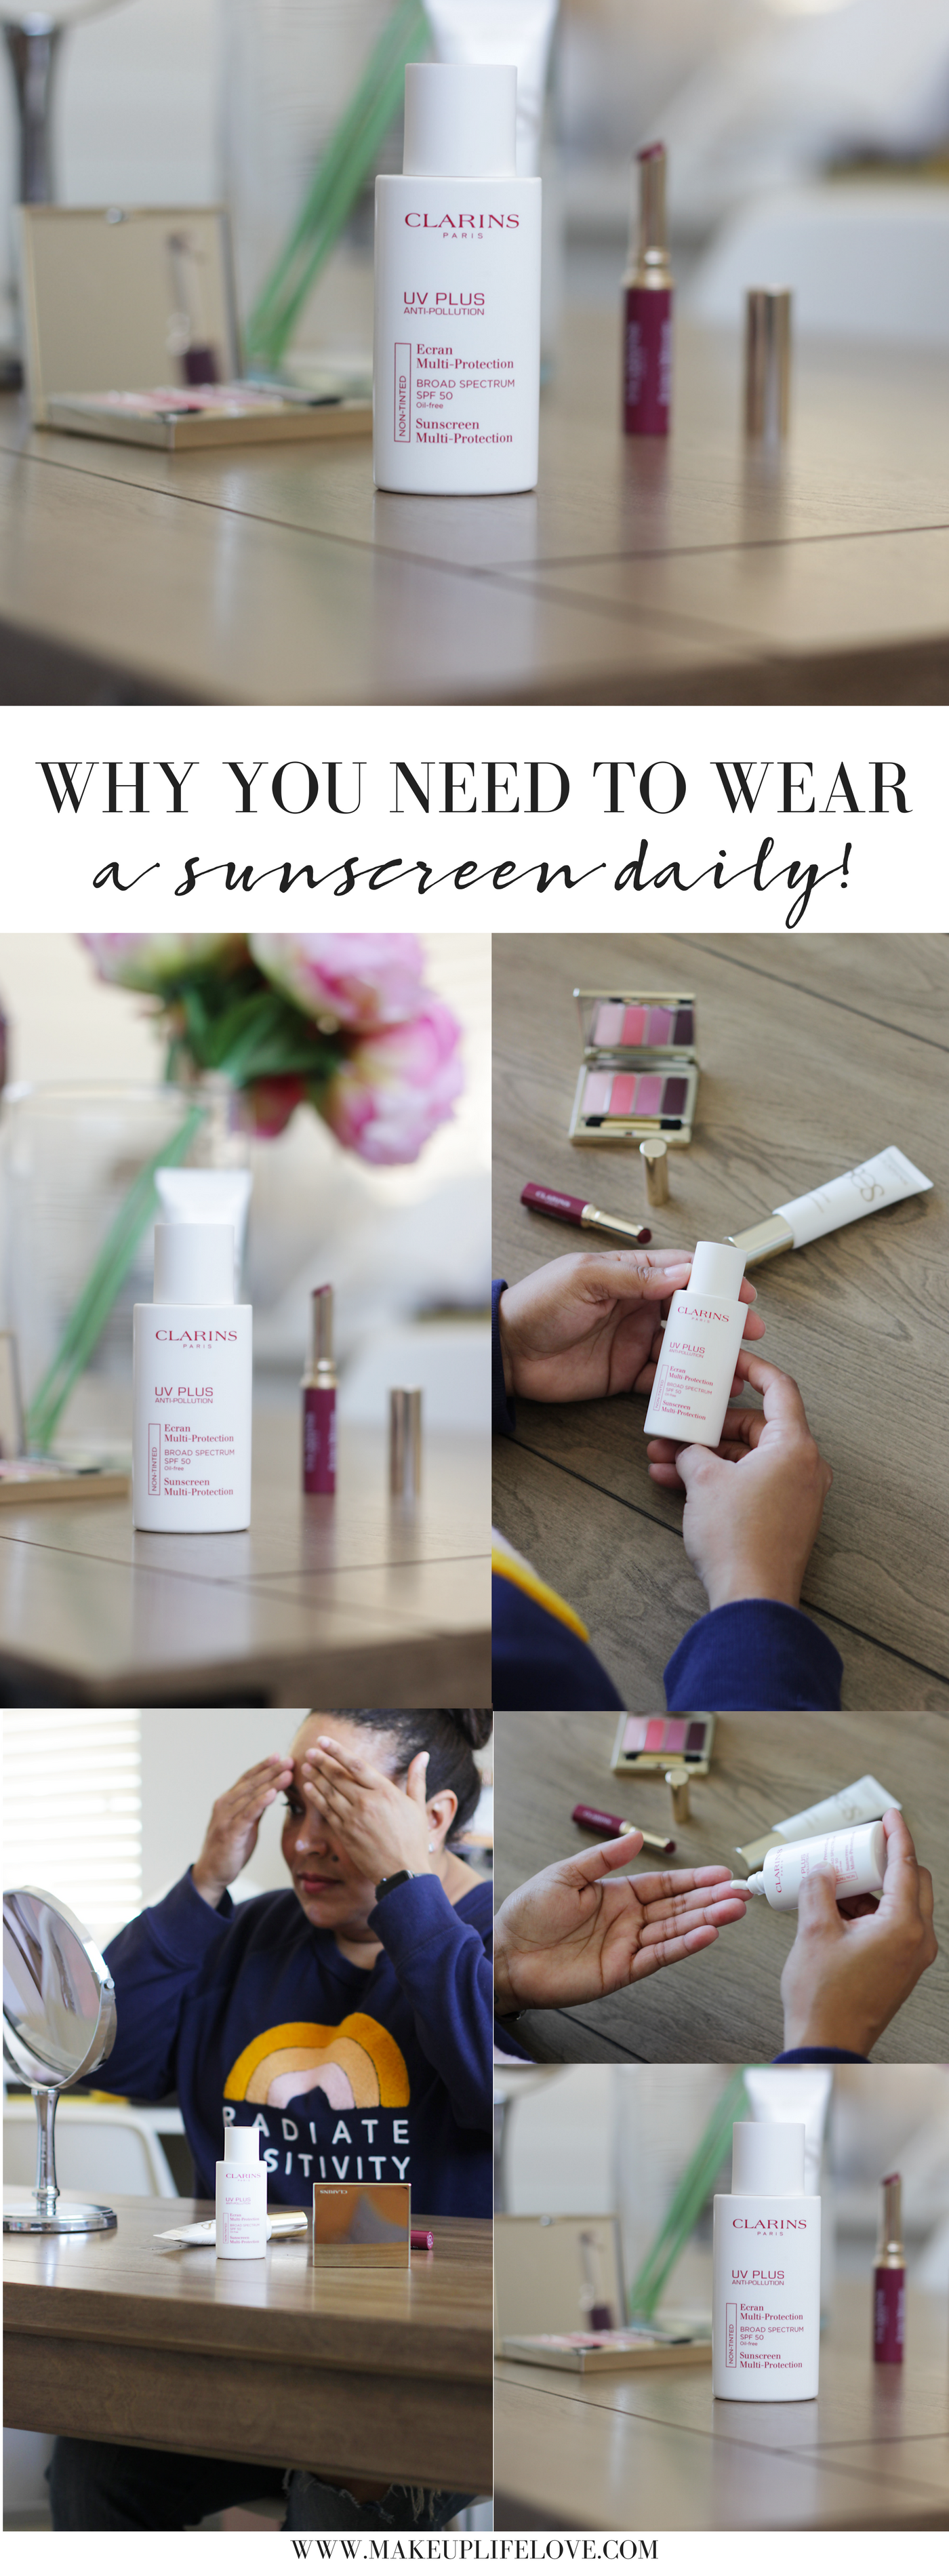 Curious why wearing sunscreen everyday is important? Makeup Life and Love is sharing her top 5 reasons why wearing sunscreen is NON-NEGOTIABLE! Here is why!